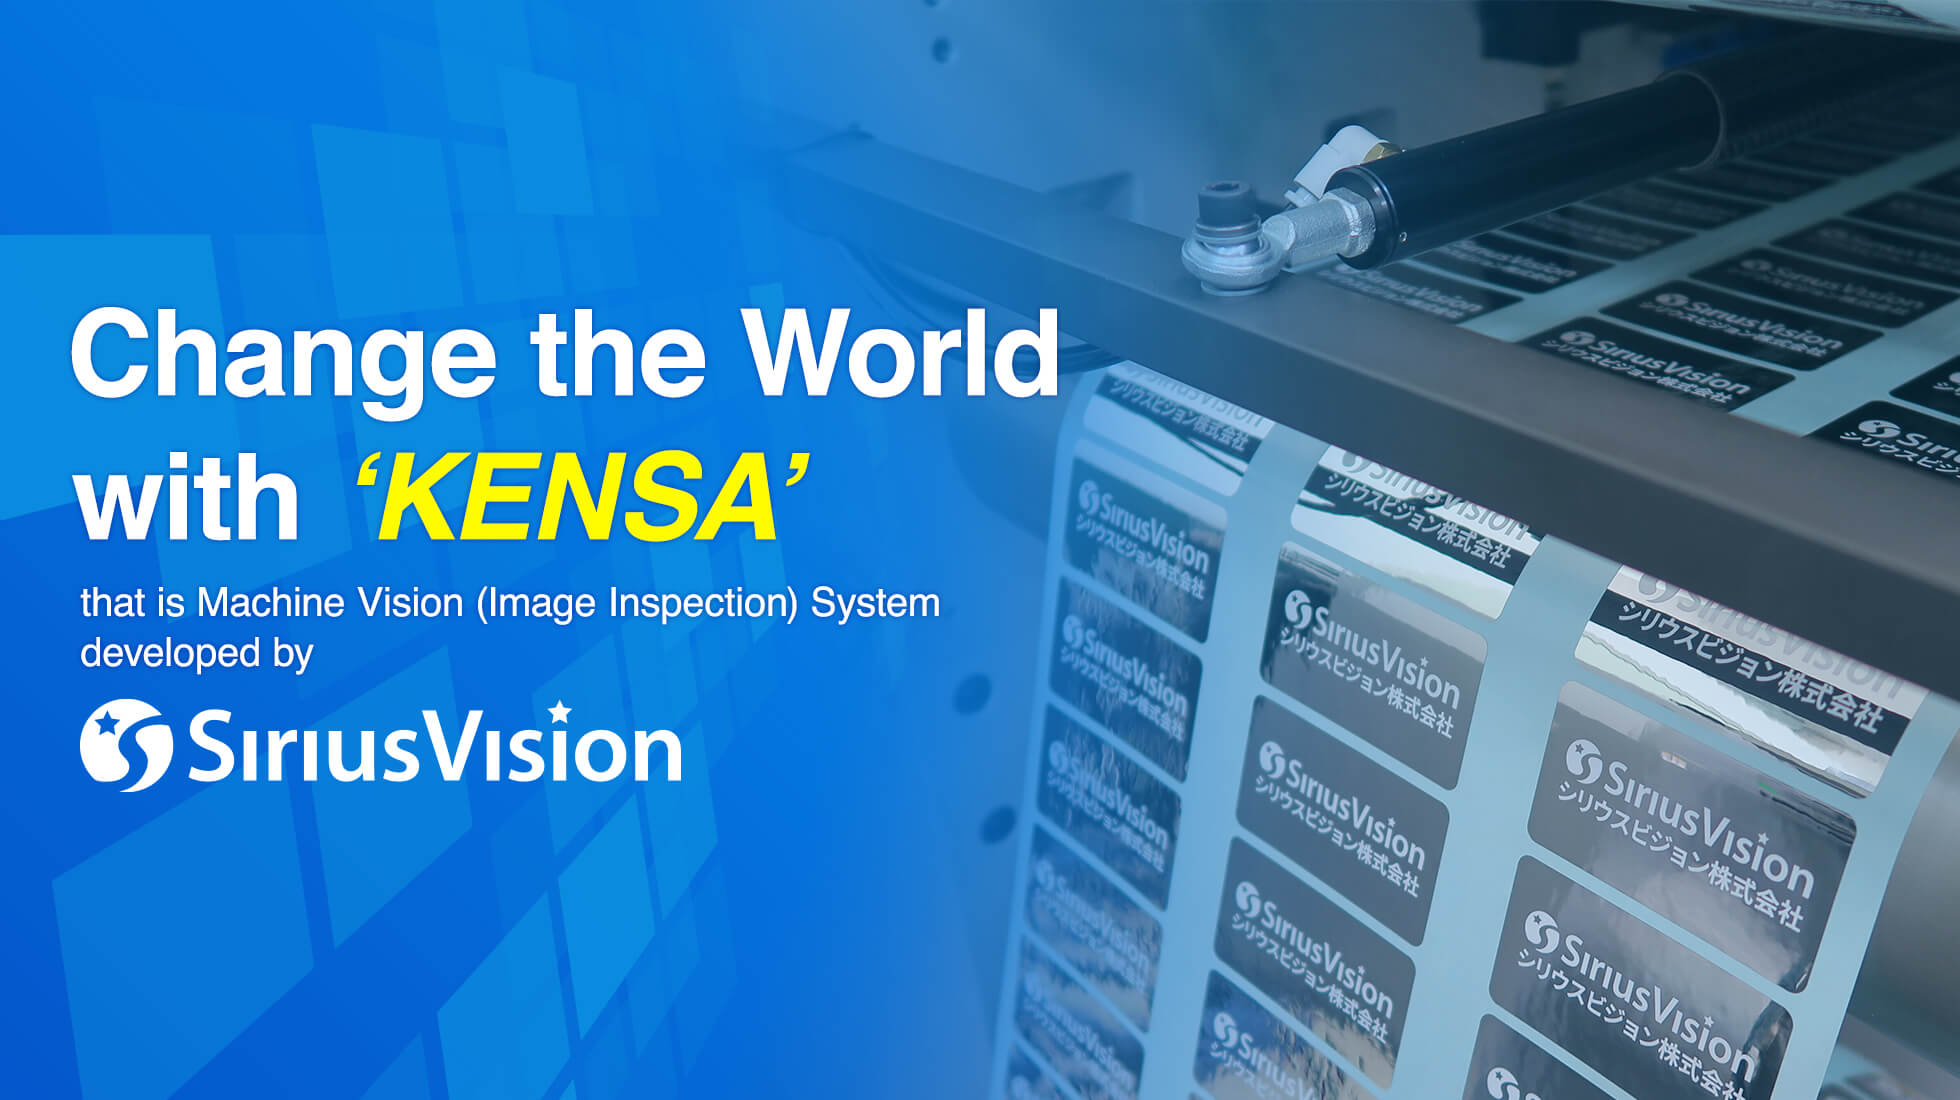 Change the World with 'KENSA', that is Machine Vision (Image Inspection) System developed by SiriusVision